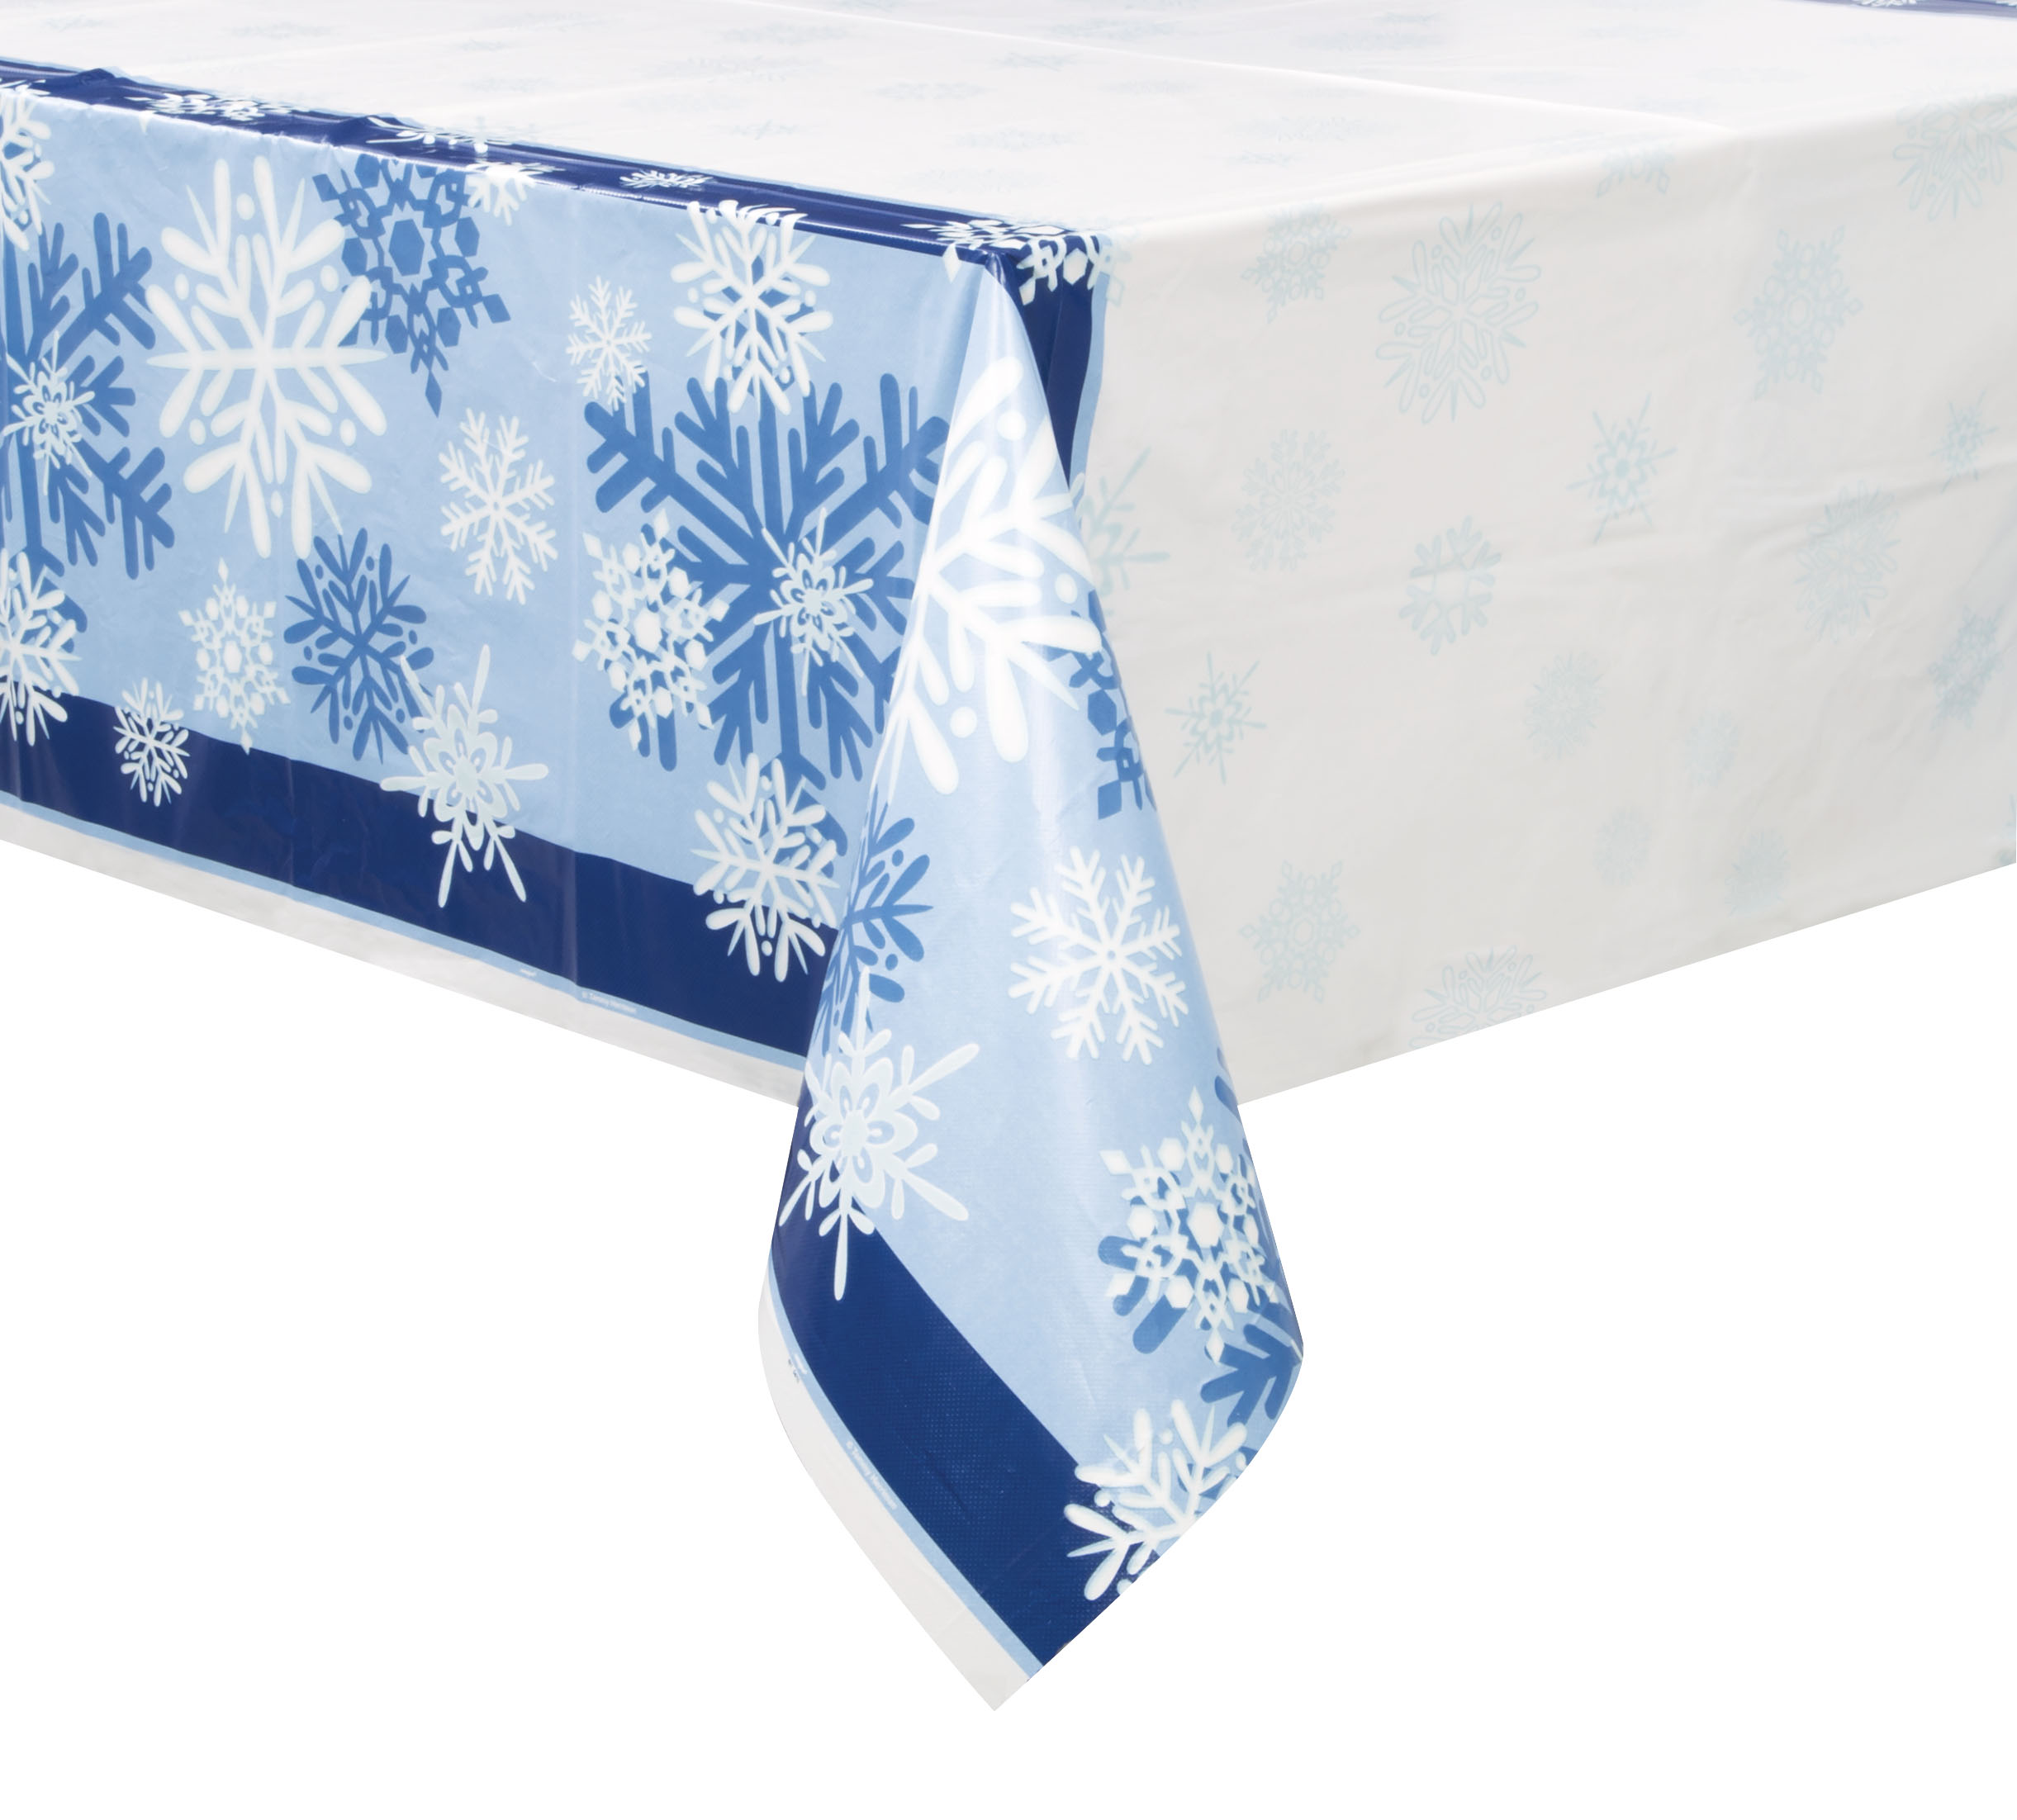 213 & Festive snow flake pattern holiday tablecloth fits a 6 foot banquet table